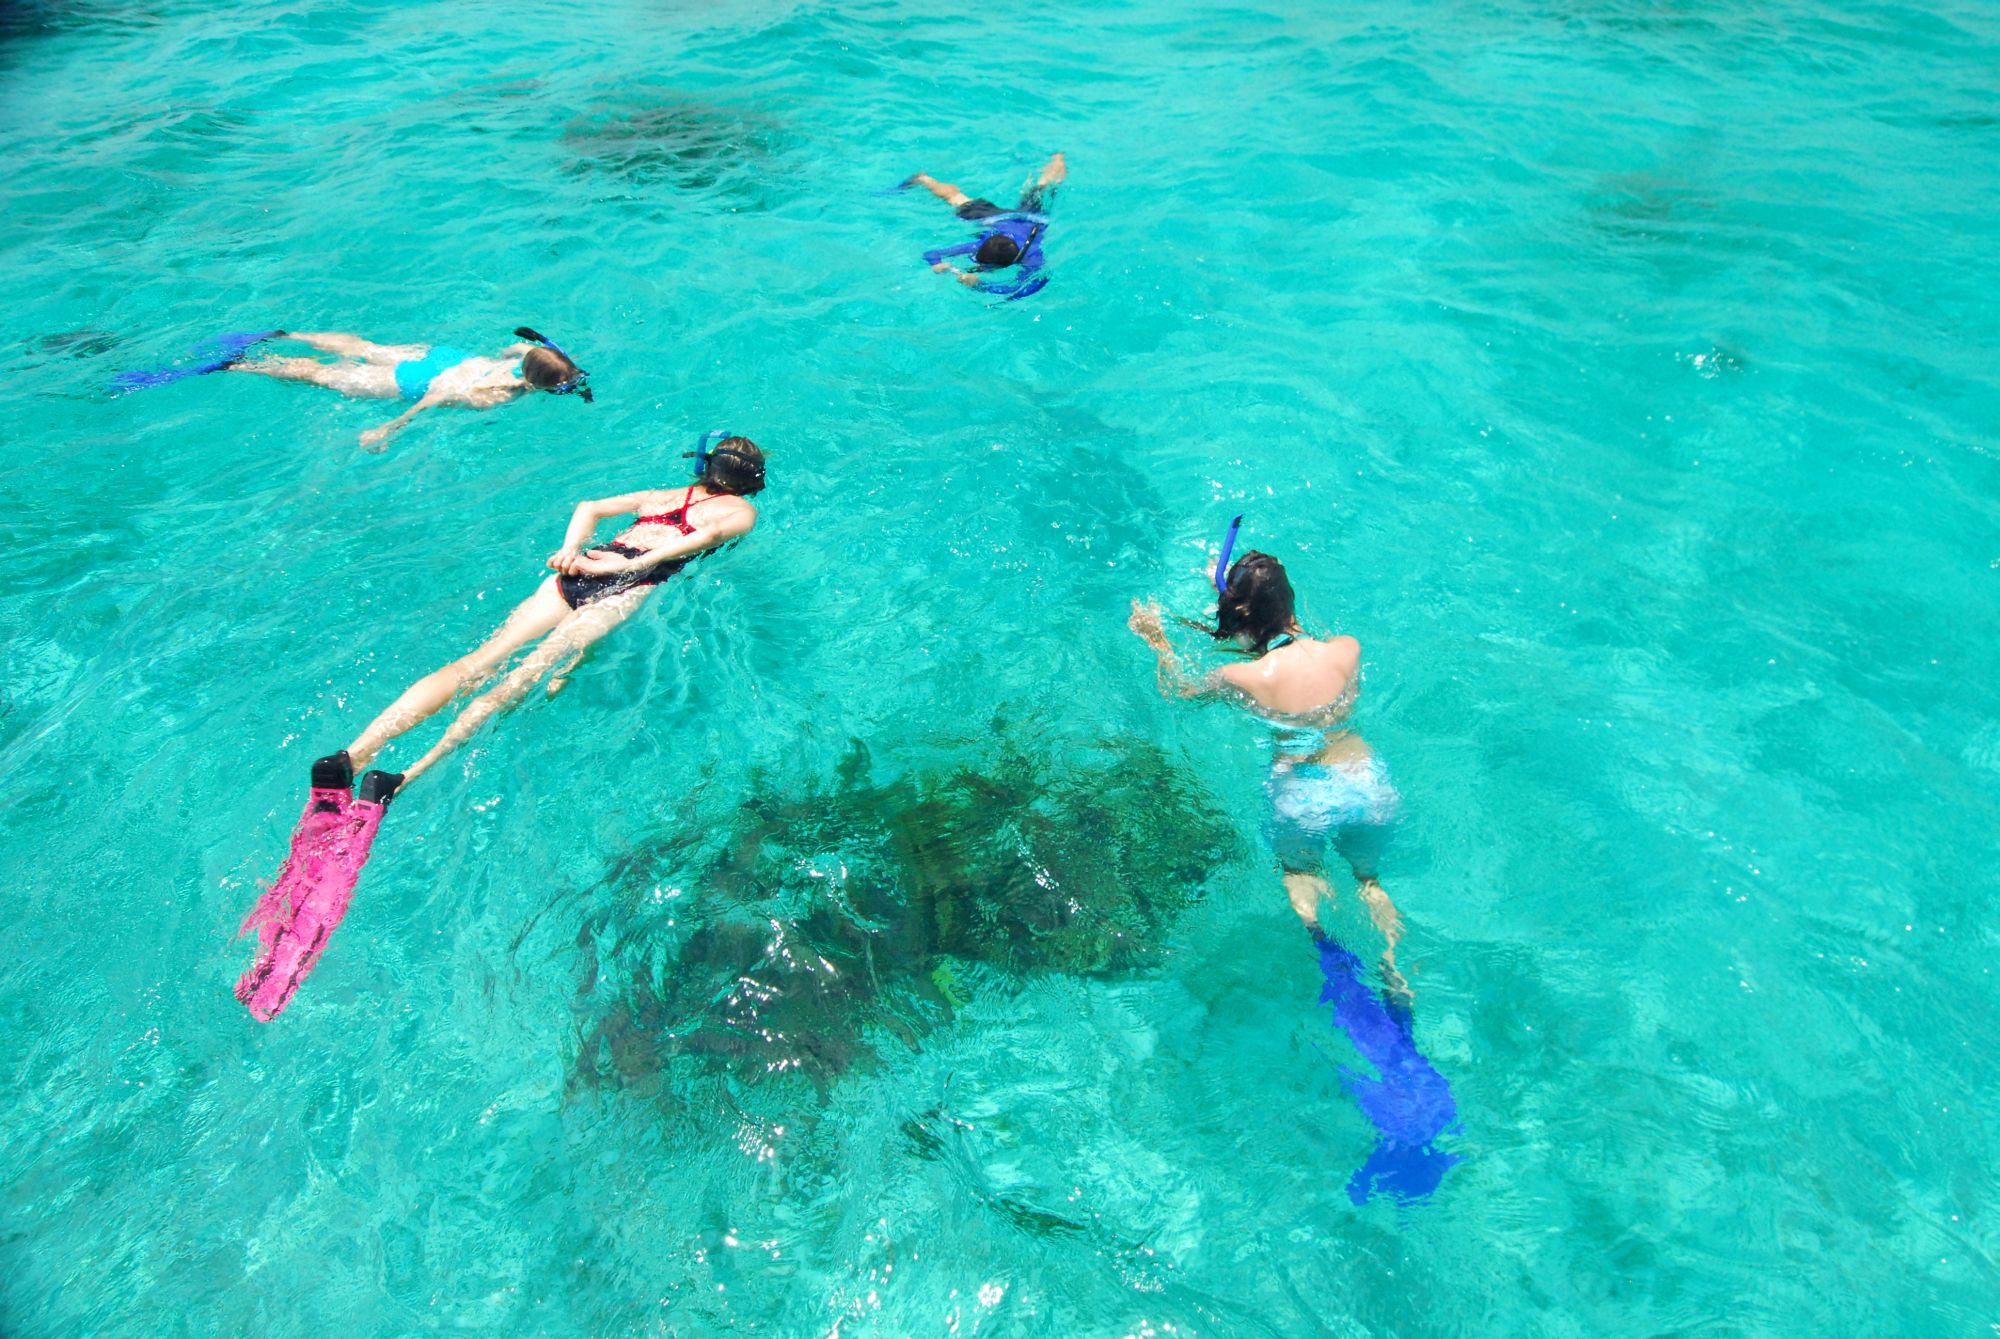 Belize snorkeling vacations and eco-tours on Turneffe Atoll with the guides from Turneffe Flats.